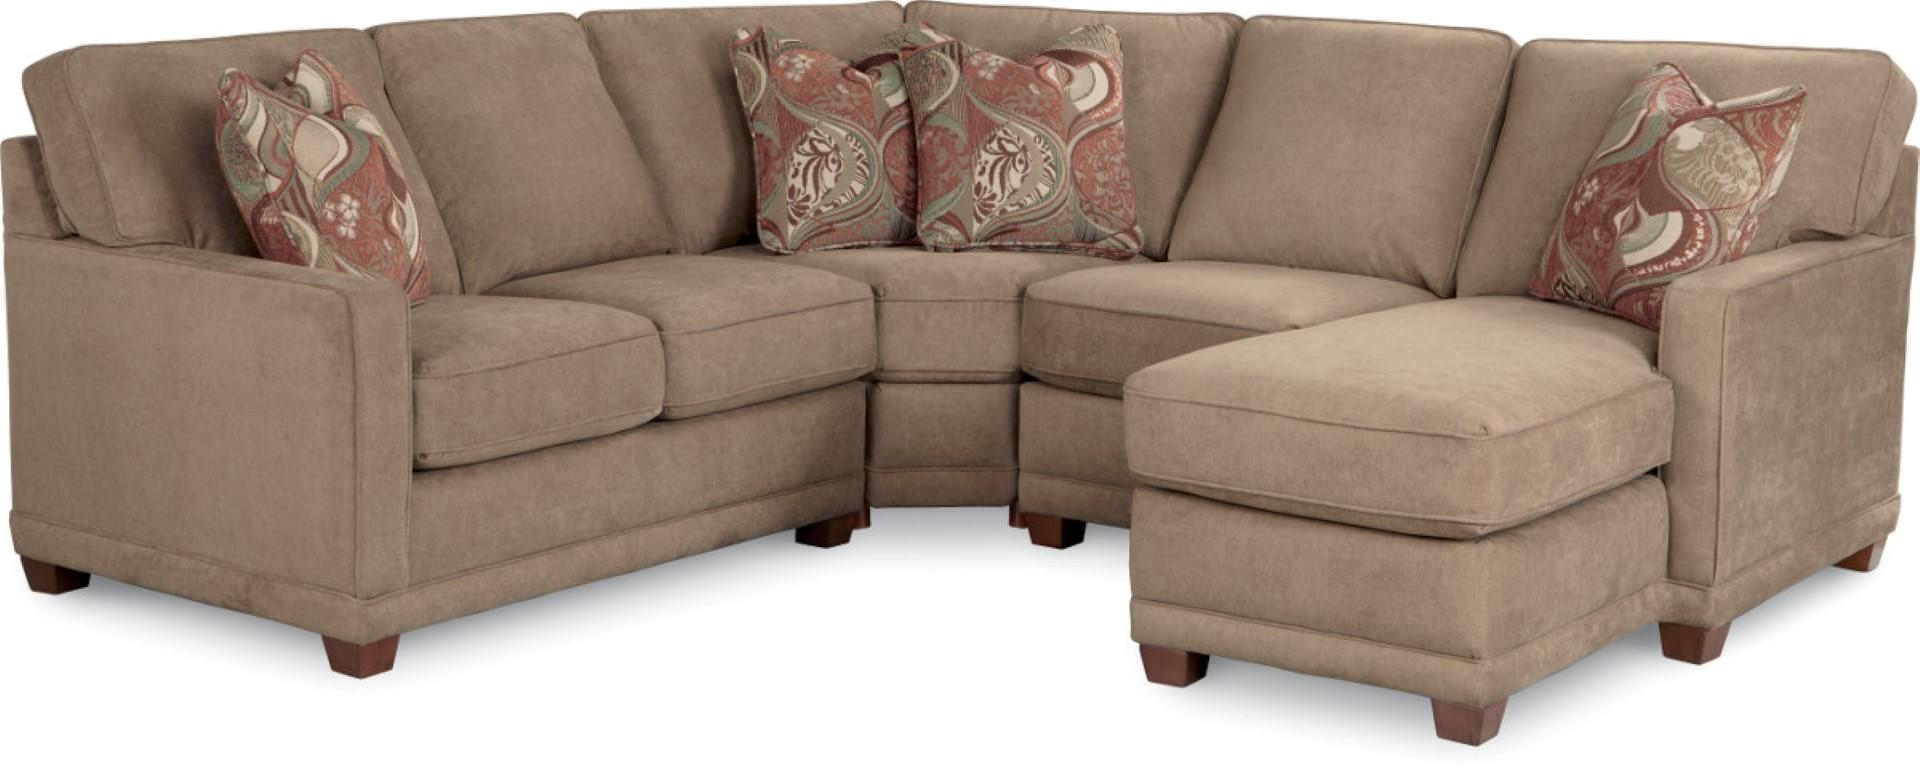 Furniture: Lazyboy Sectional With Cool Various Designs And Colors With Lazyboy Sectional Sofas (View 2 of 20)